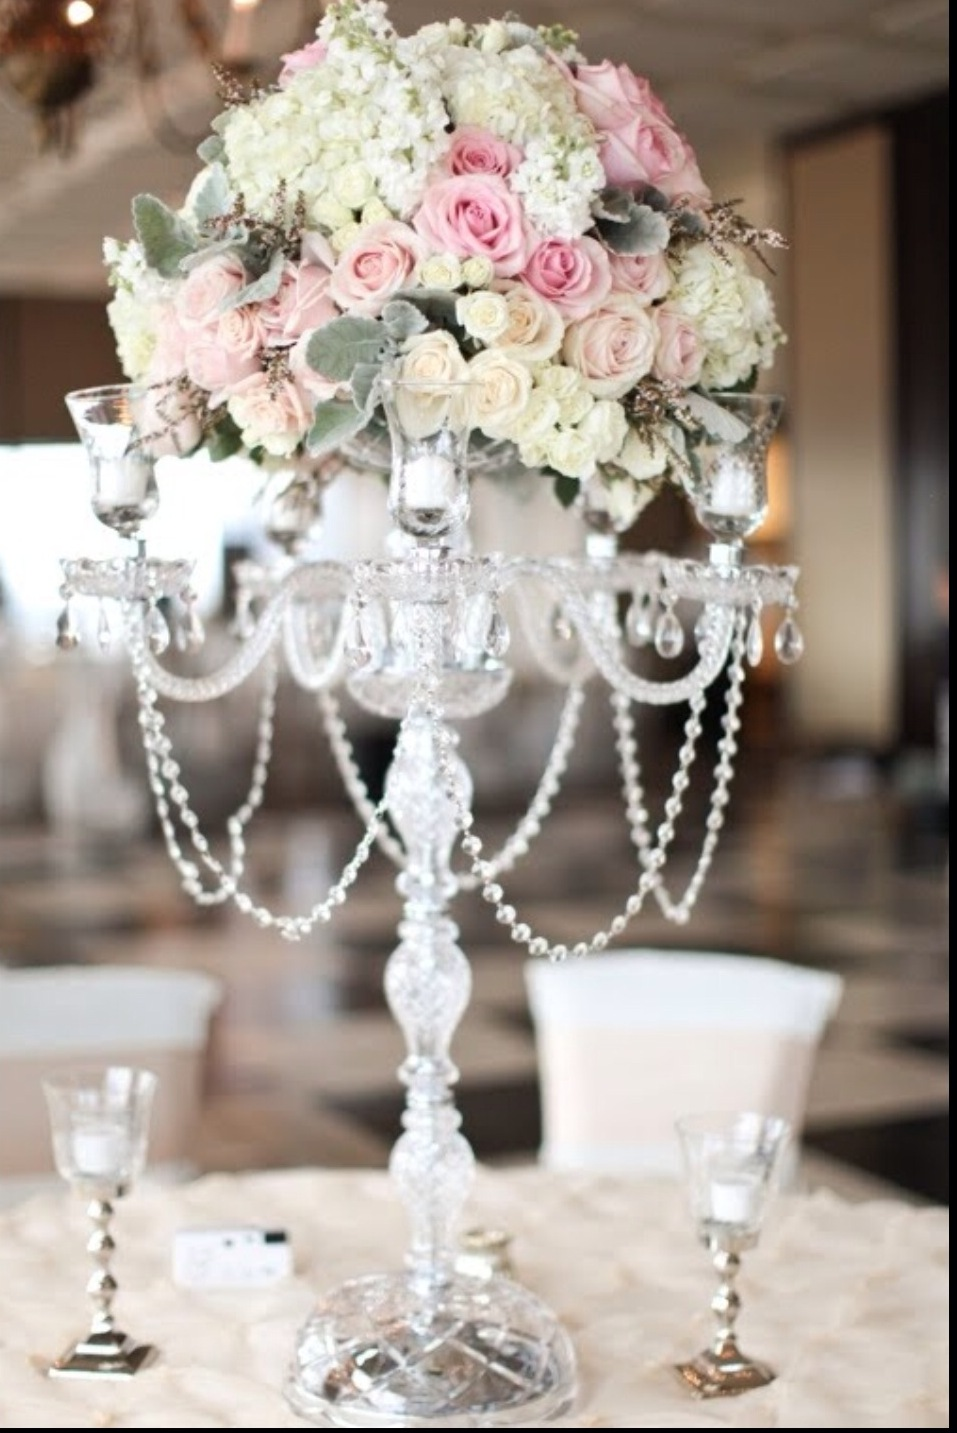 The rose colored aisle candelabra centerpieces